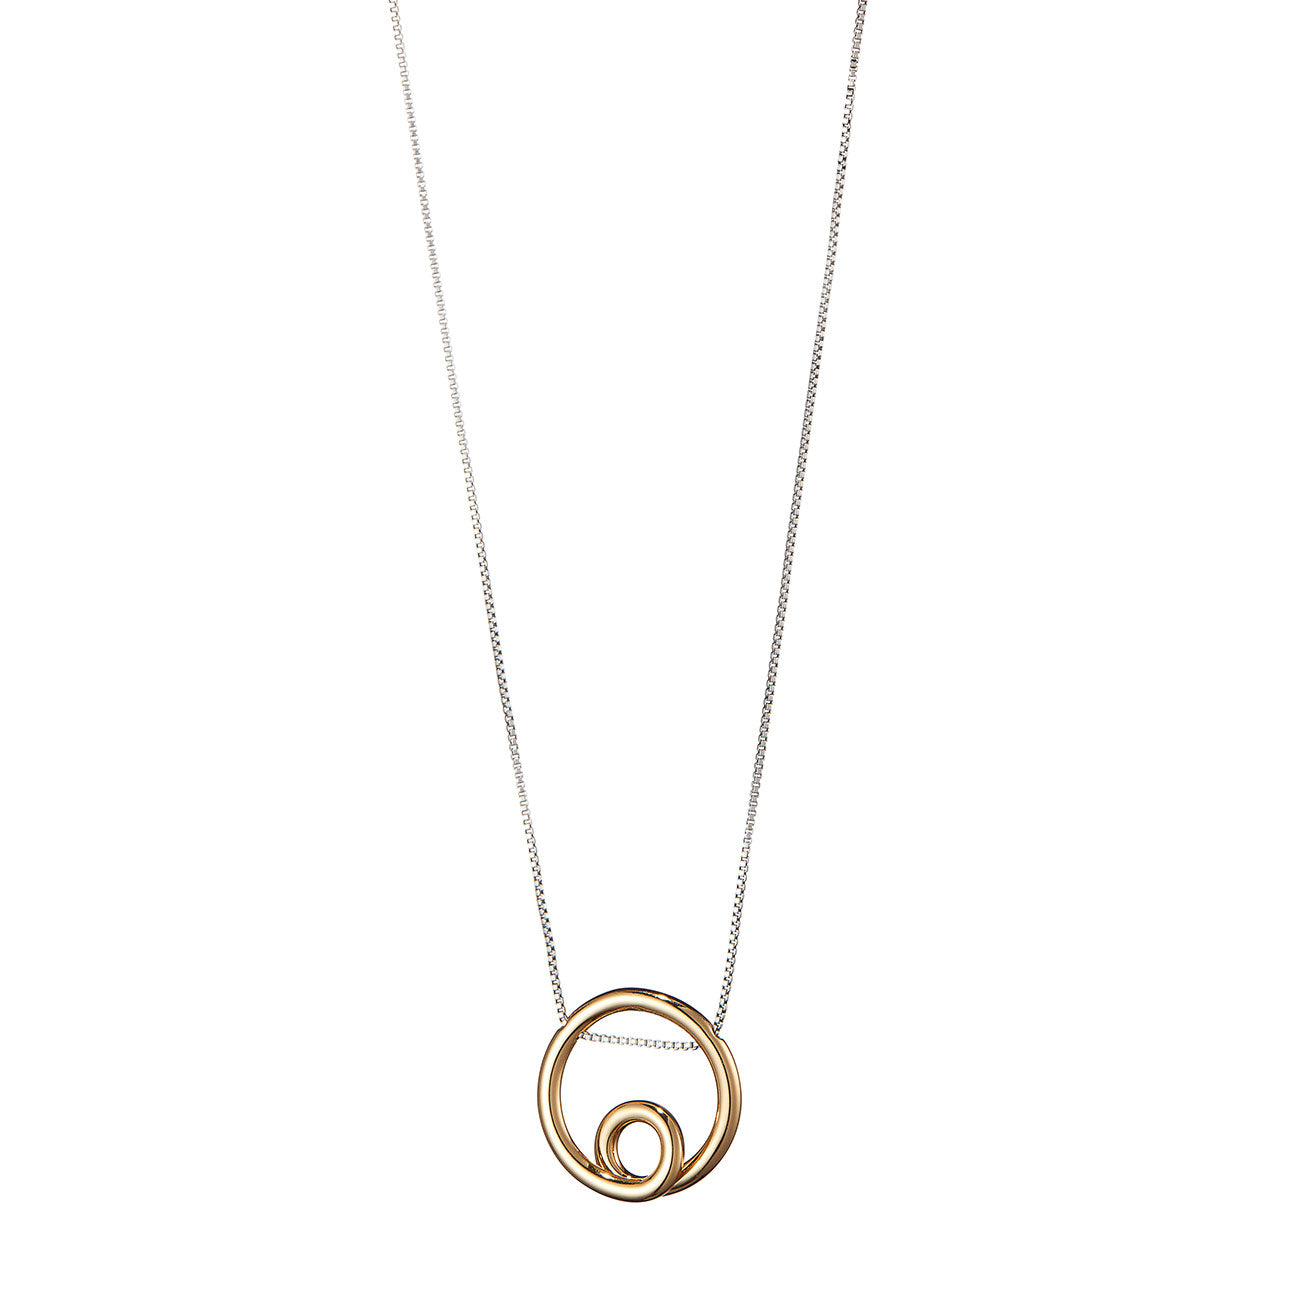 The Mini Loop Pendant by Jenny Bird in Two-Tone